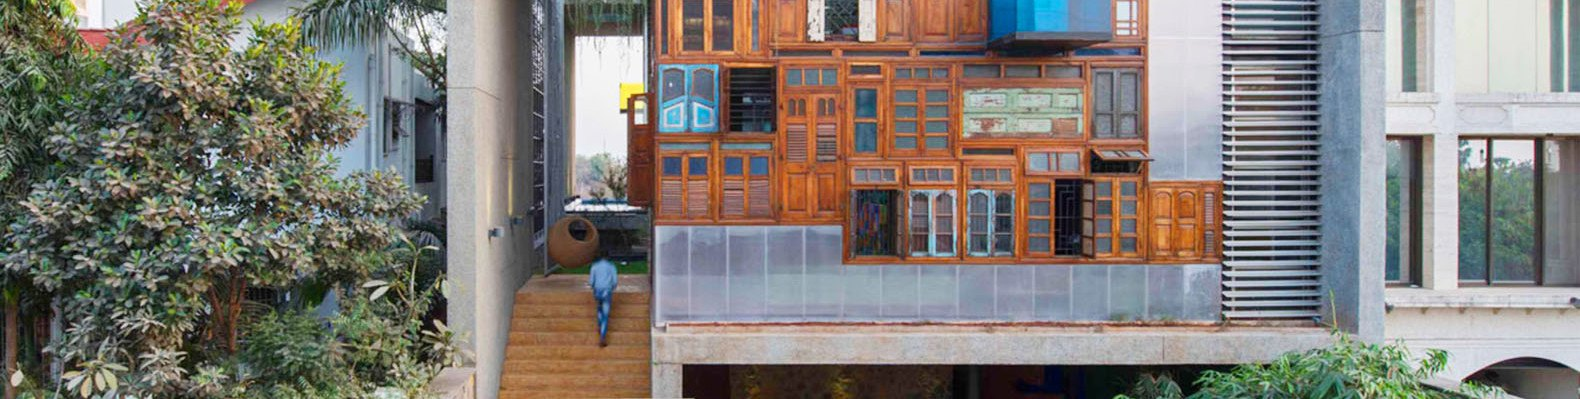 A colorful facade of recycled doors and windows adorns this unique Mumbai residence | Inhabitat - Green Design Innovation Architecture Green Building & A colorful facade of recycled doors and windows adorns this unique ... Pezcame.Com